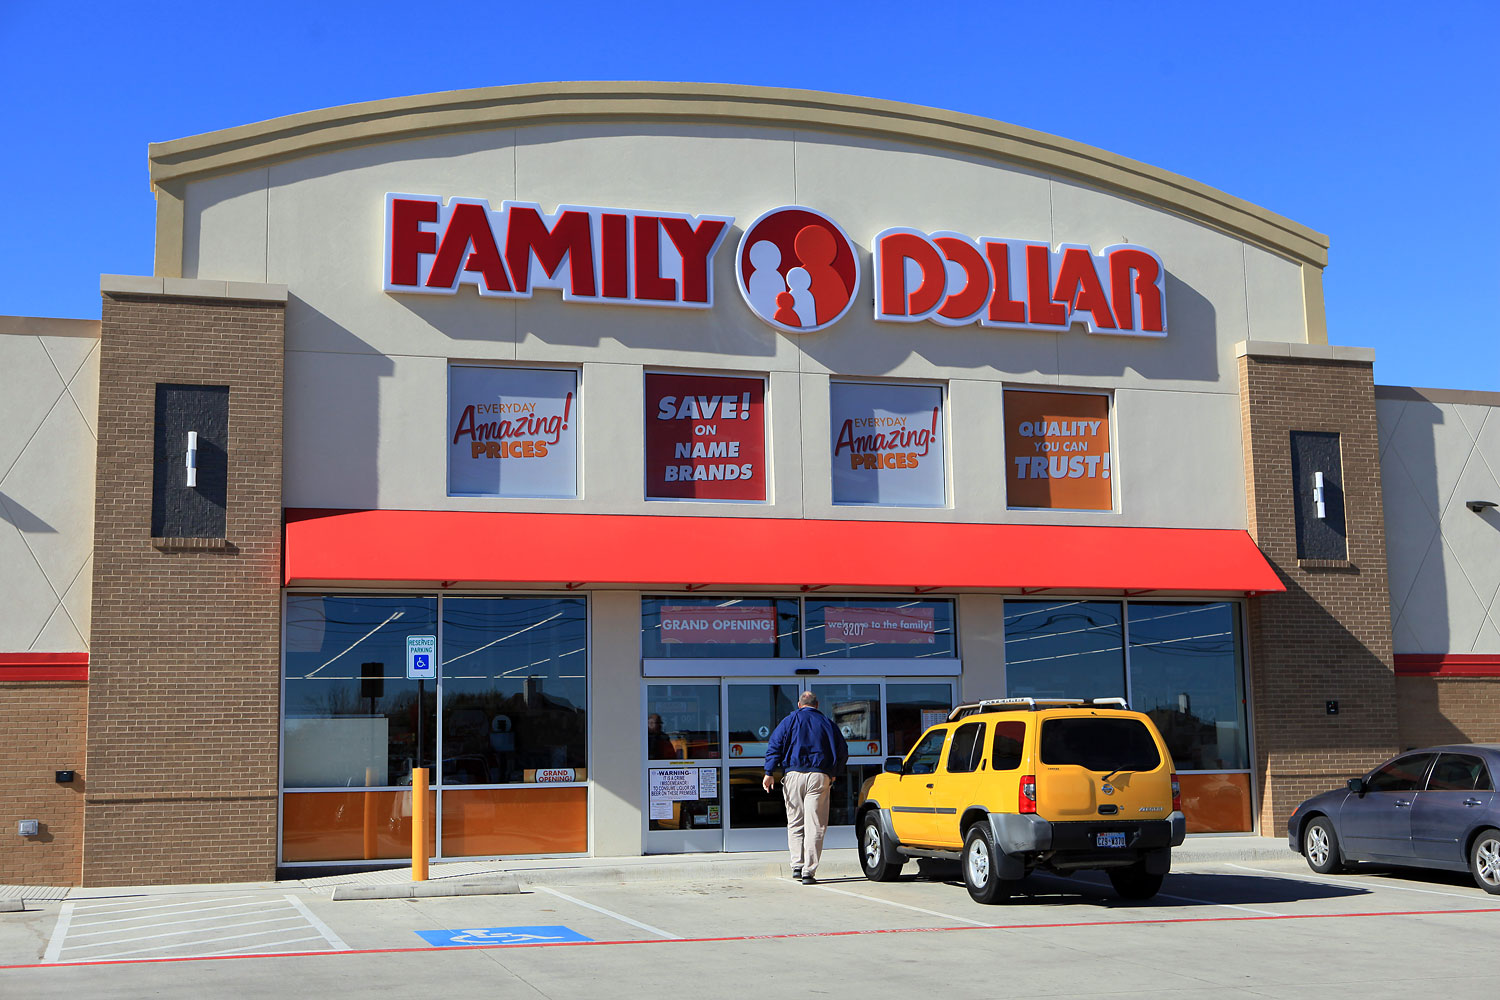 The store front of a Family Dollar Stores Inc. location in Mansfield, Texas, Jan. 7, 2014.